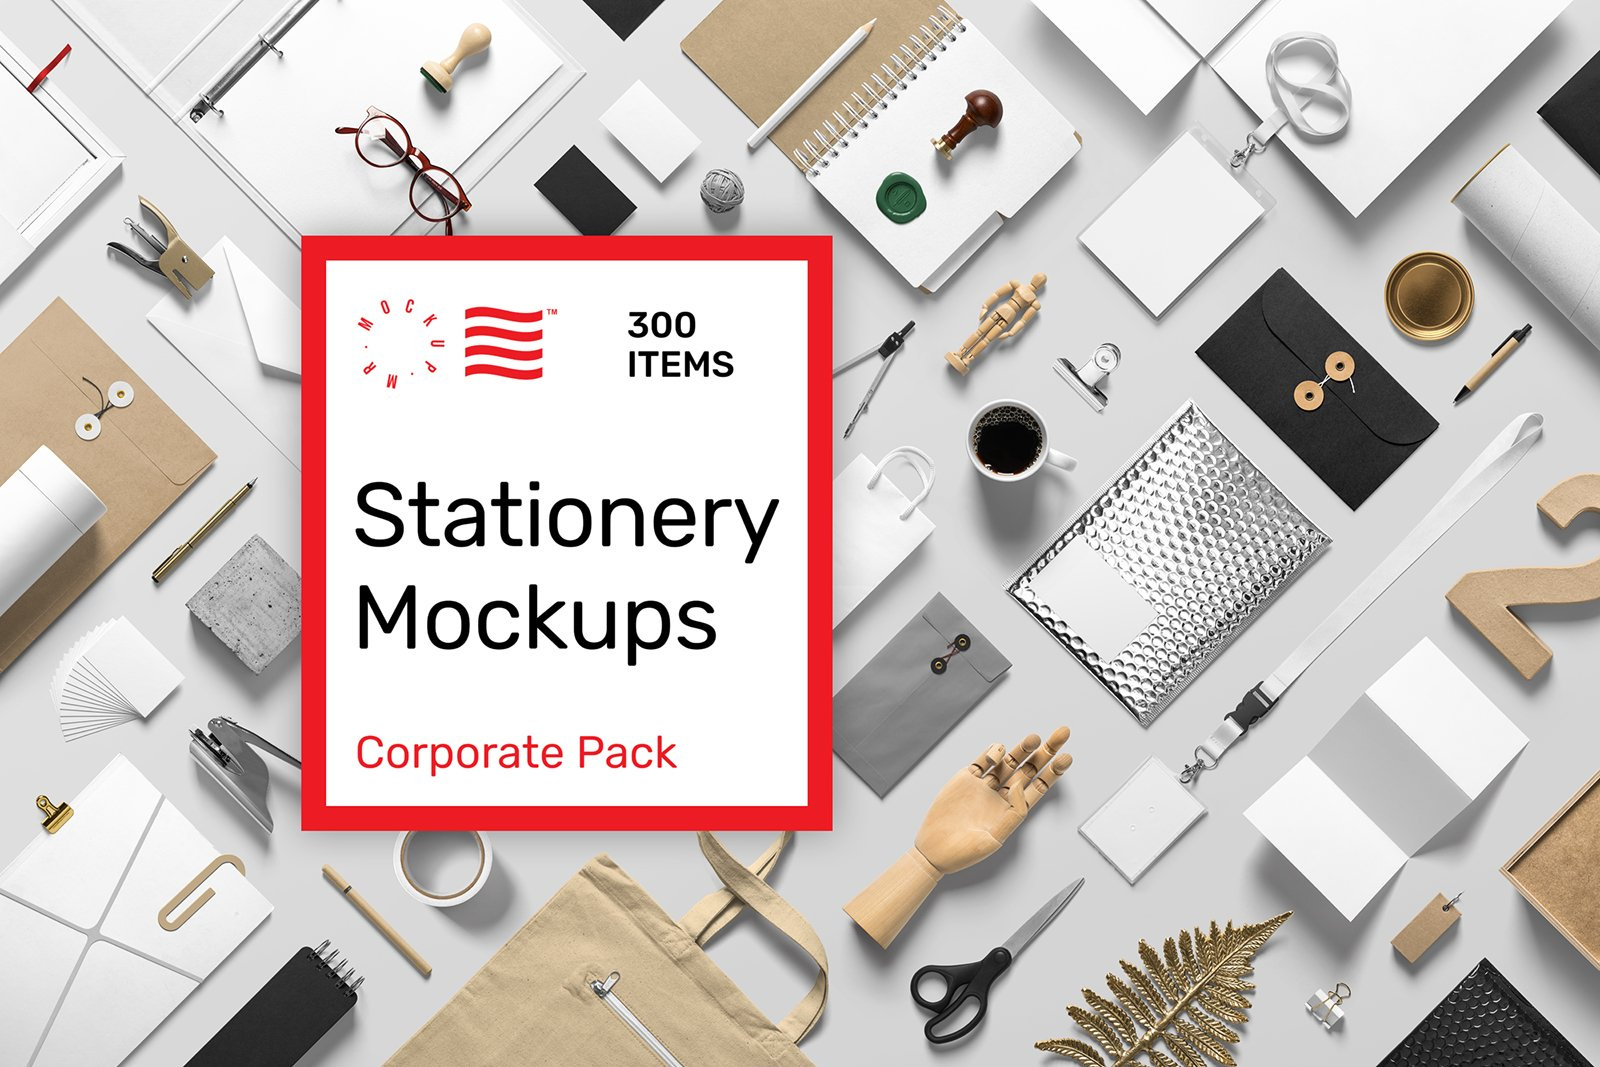 Corporate Stationery Mockups Pack